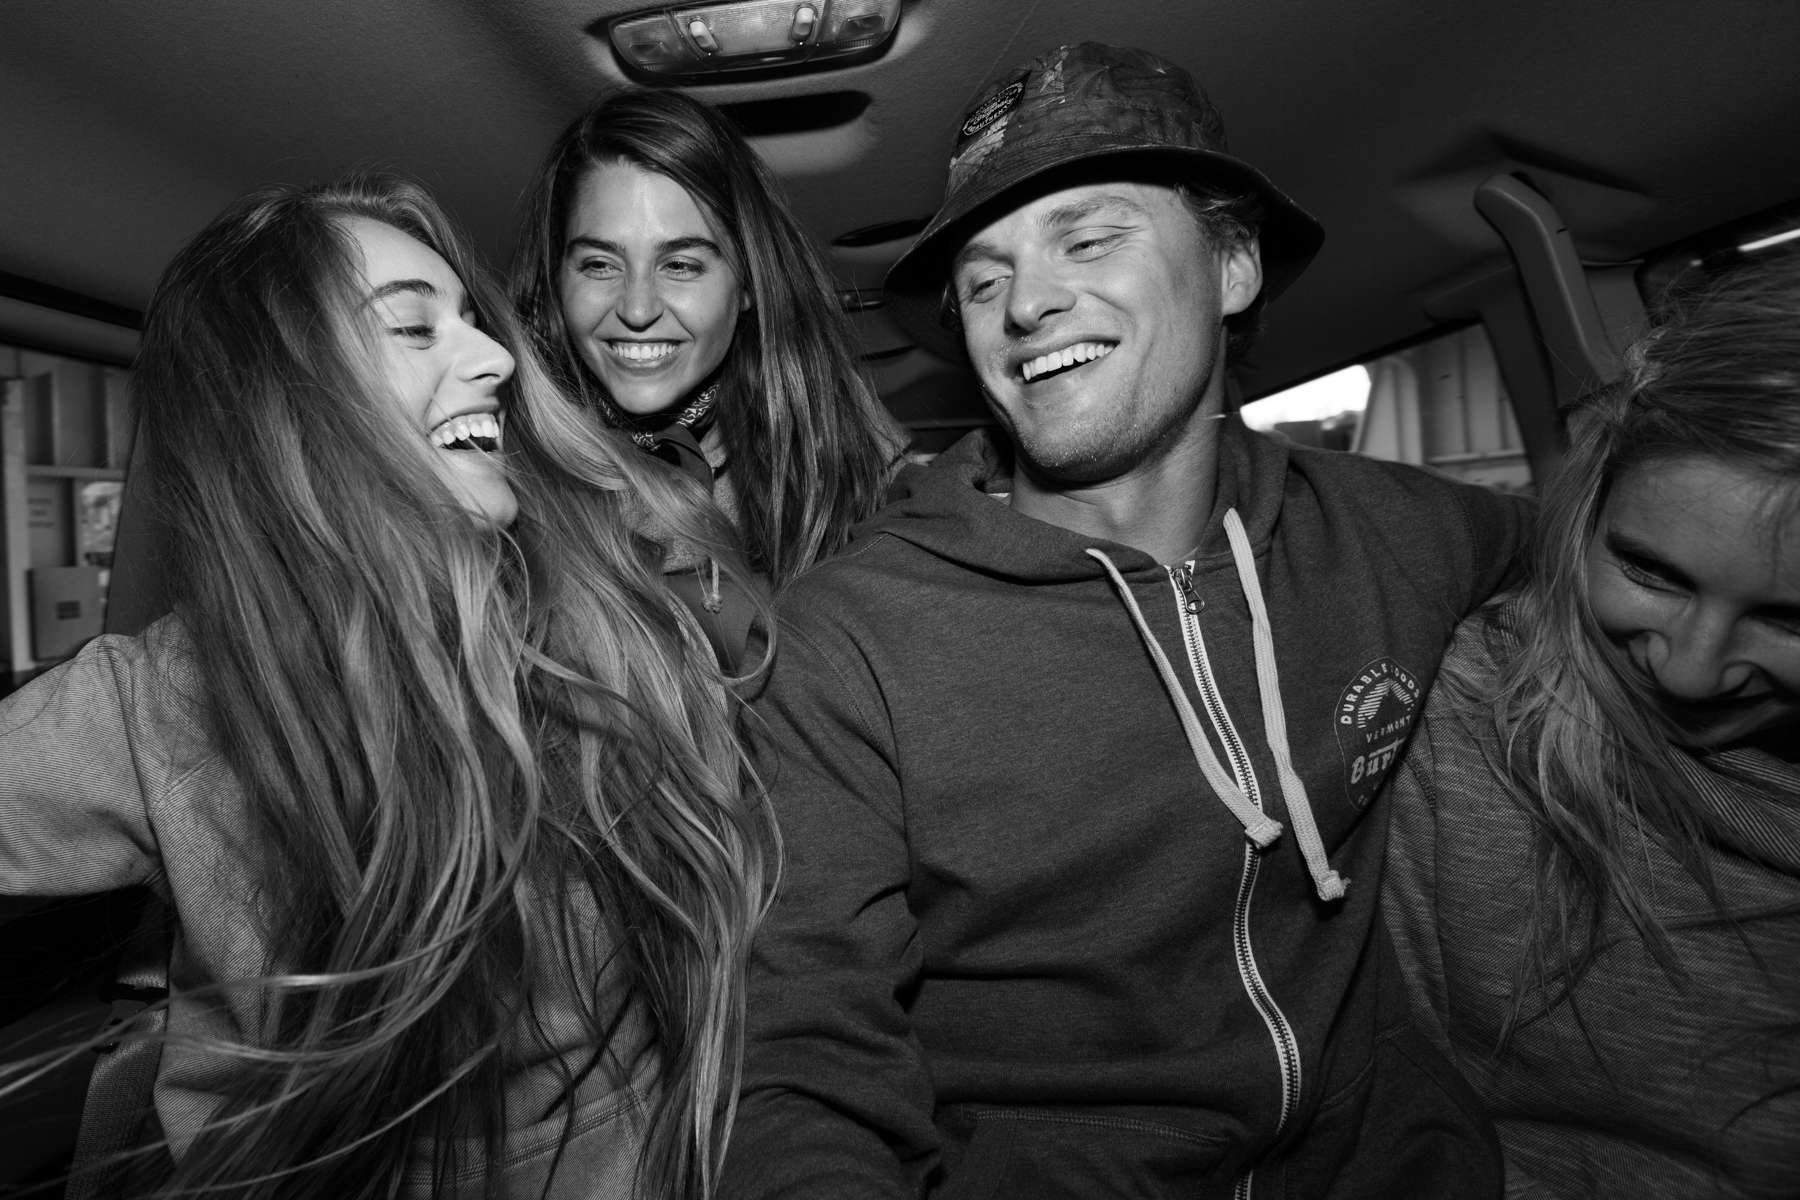 Crew, Laughing in a van